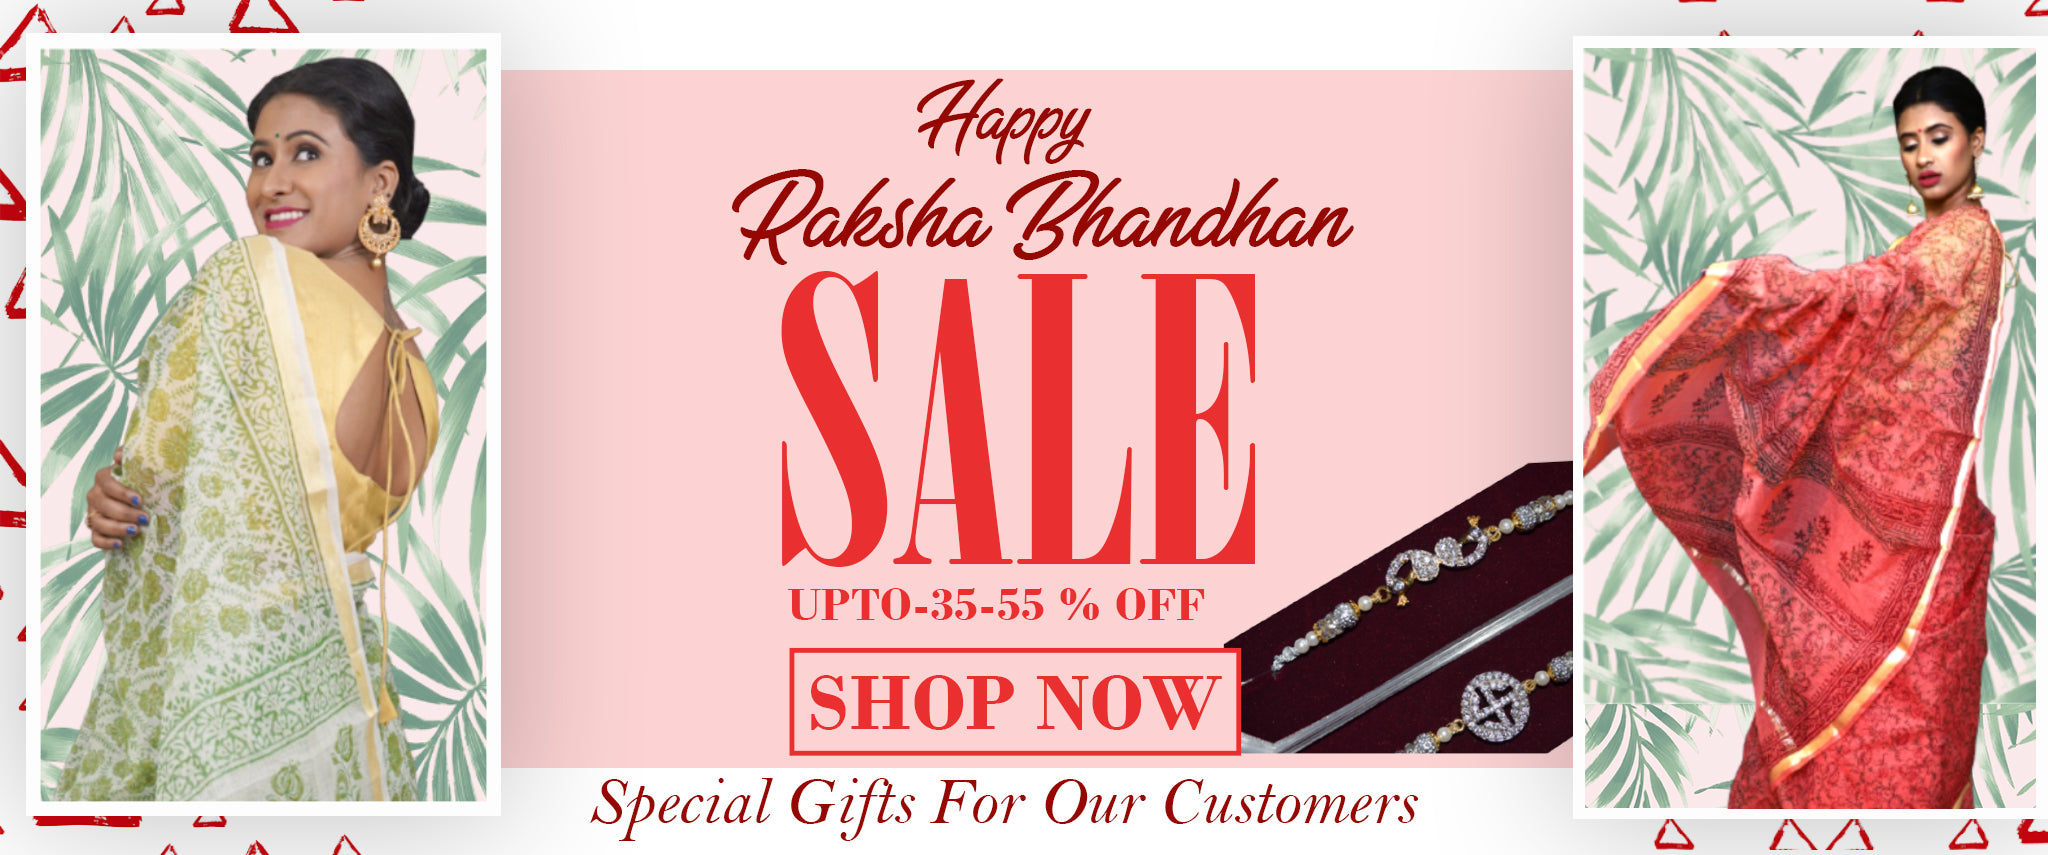 Happy Raksha Bhandhan Sarees Sale.